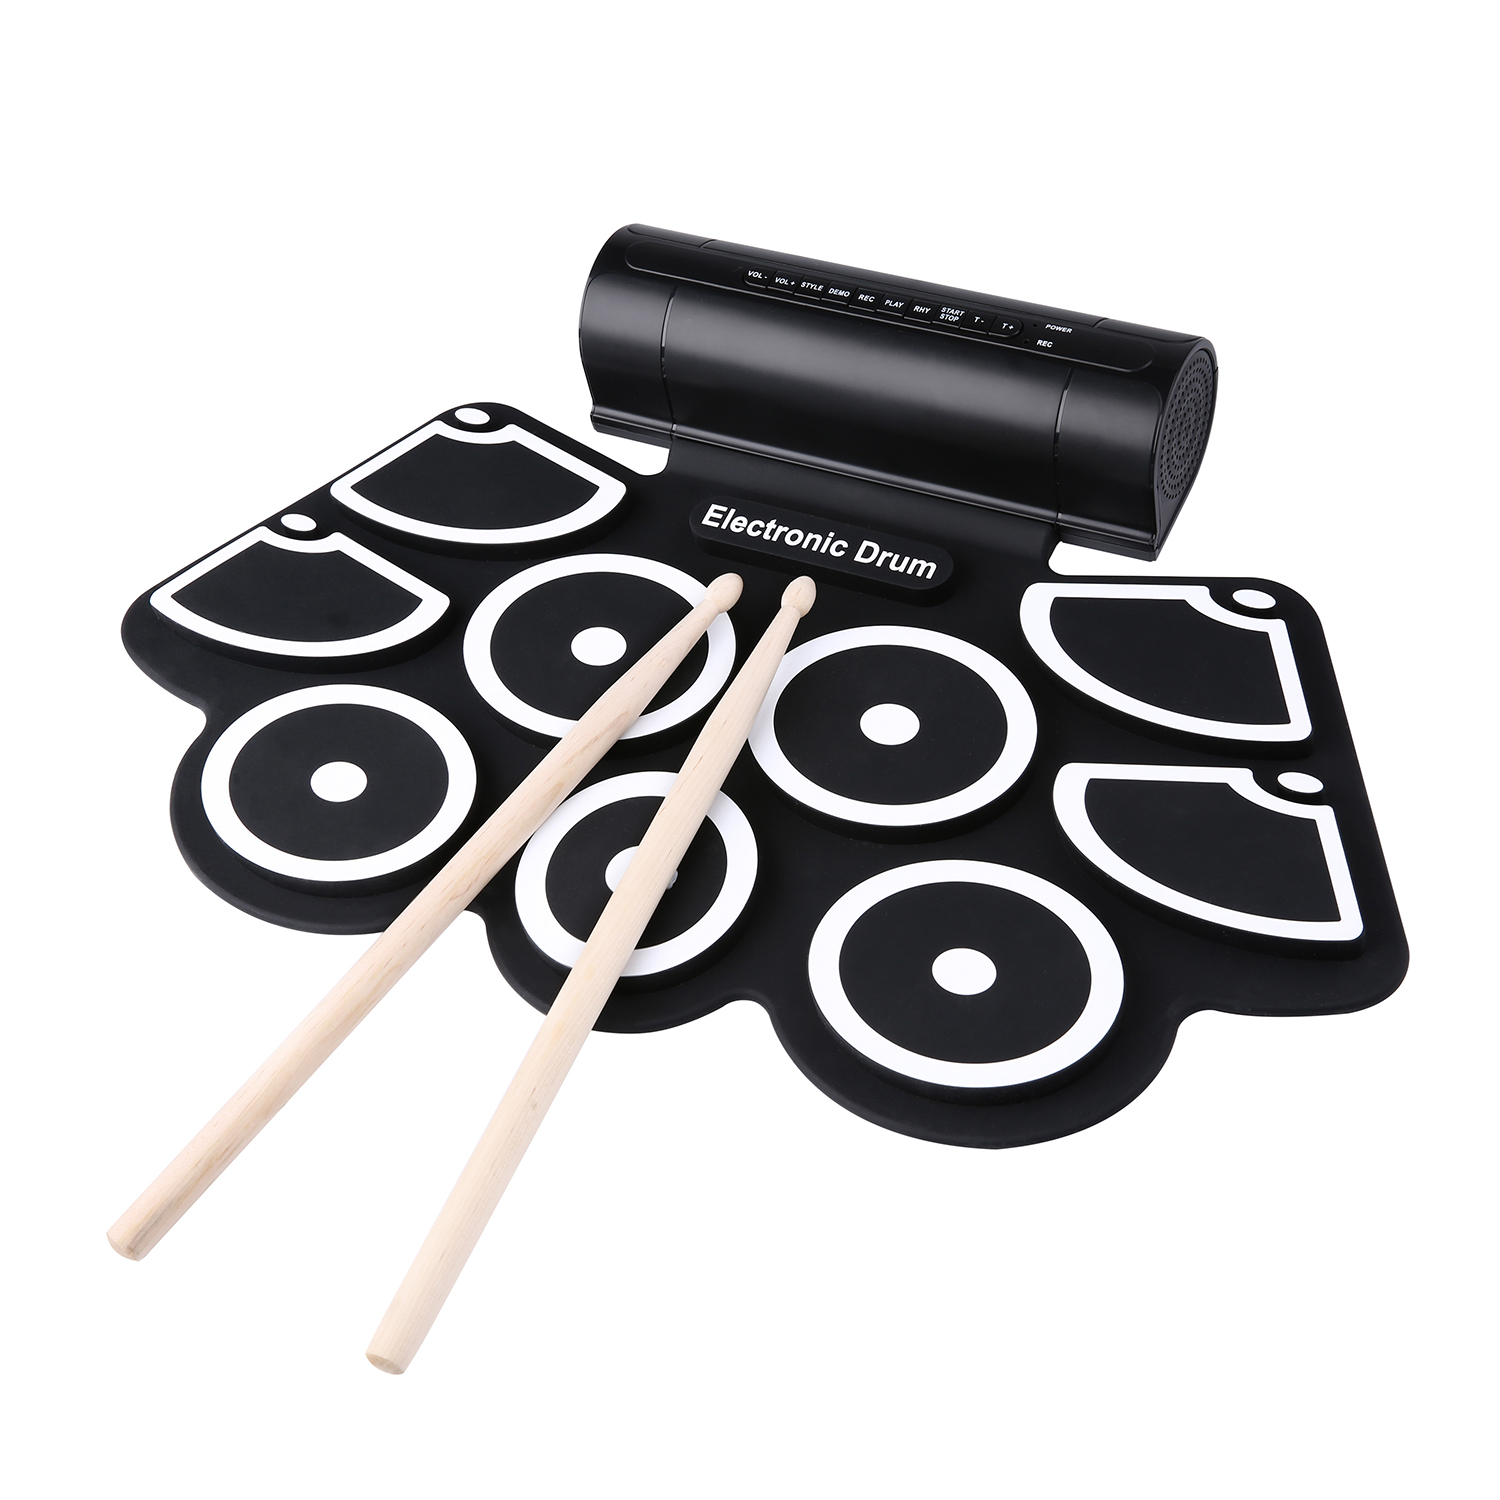 Portable Roll up Electronic USB MIDI Drum Set Kits 9 Pads Built-in Speakers Foot Pedals Drumsticks USB Cable For Practice support usb midi colorful portable roll up electronic drum set 9 silicon pads built in speakers with drumsticks foot pedals